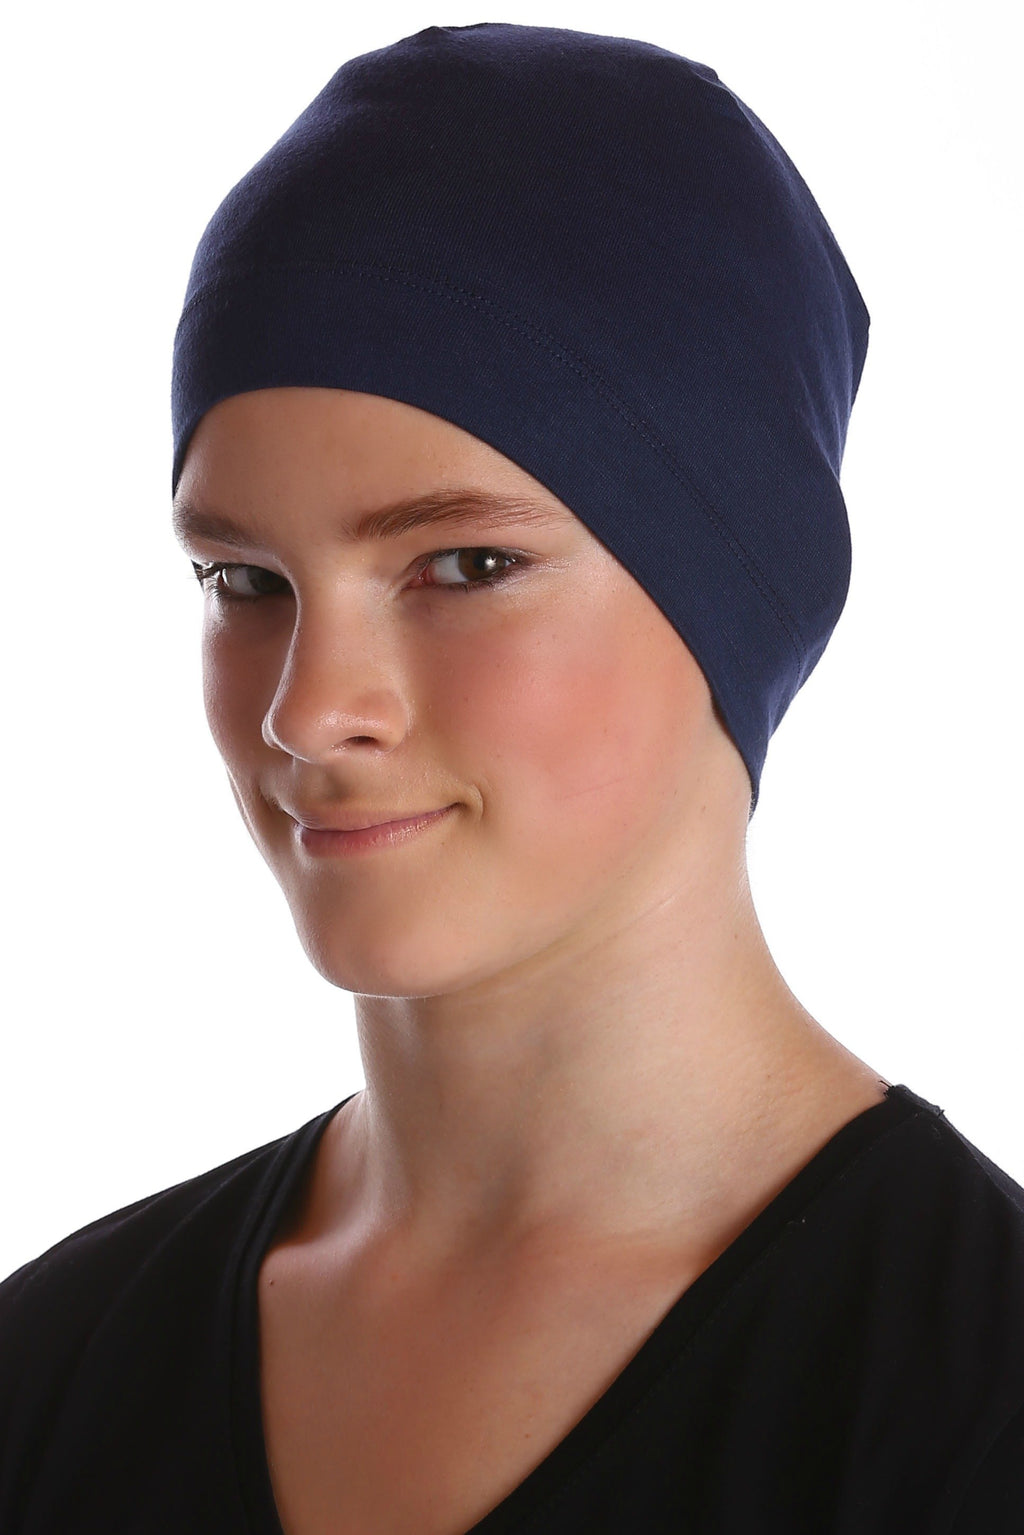 Deresina teen beanie for hairloss denim